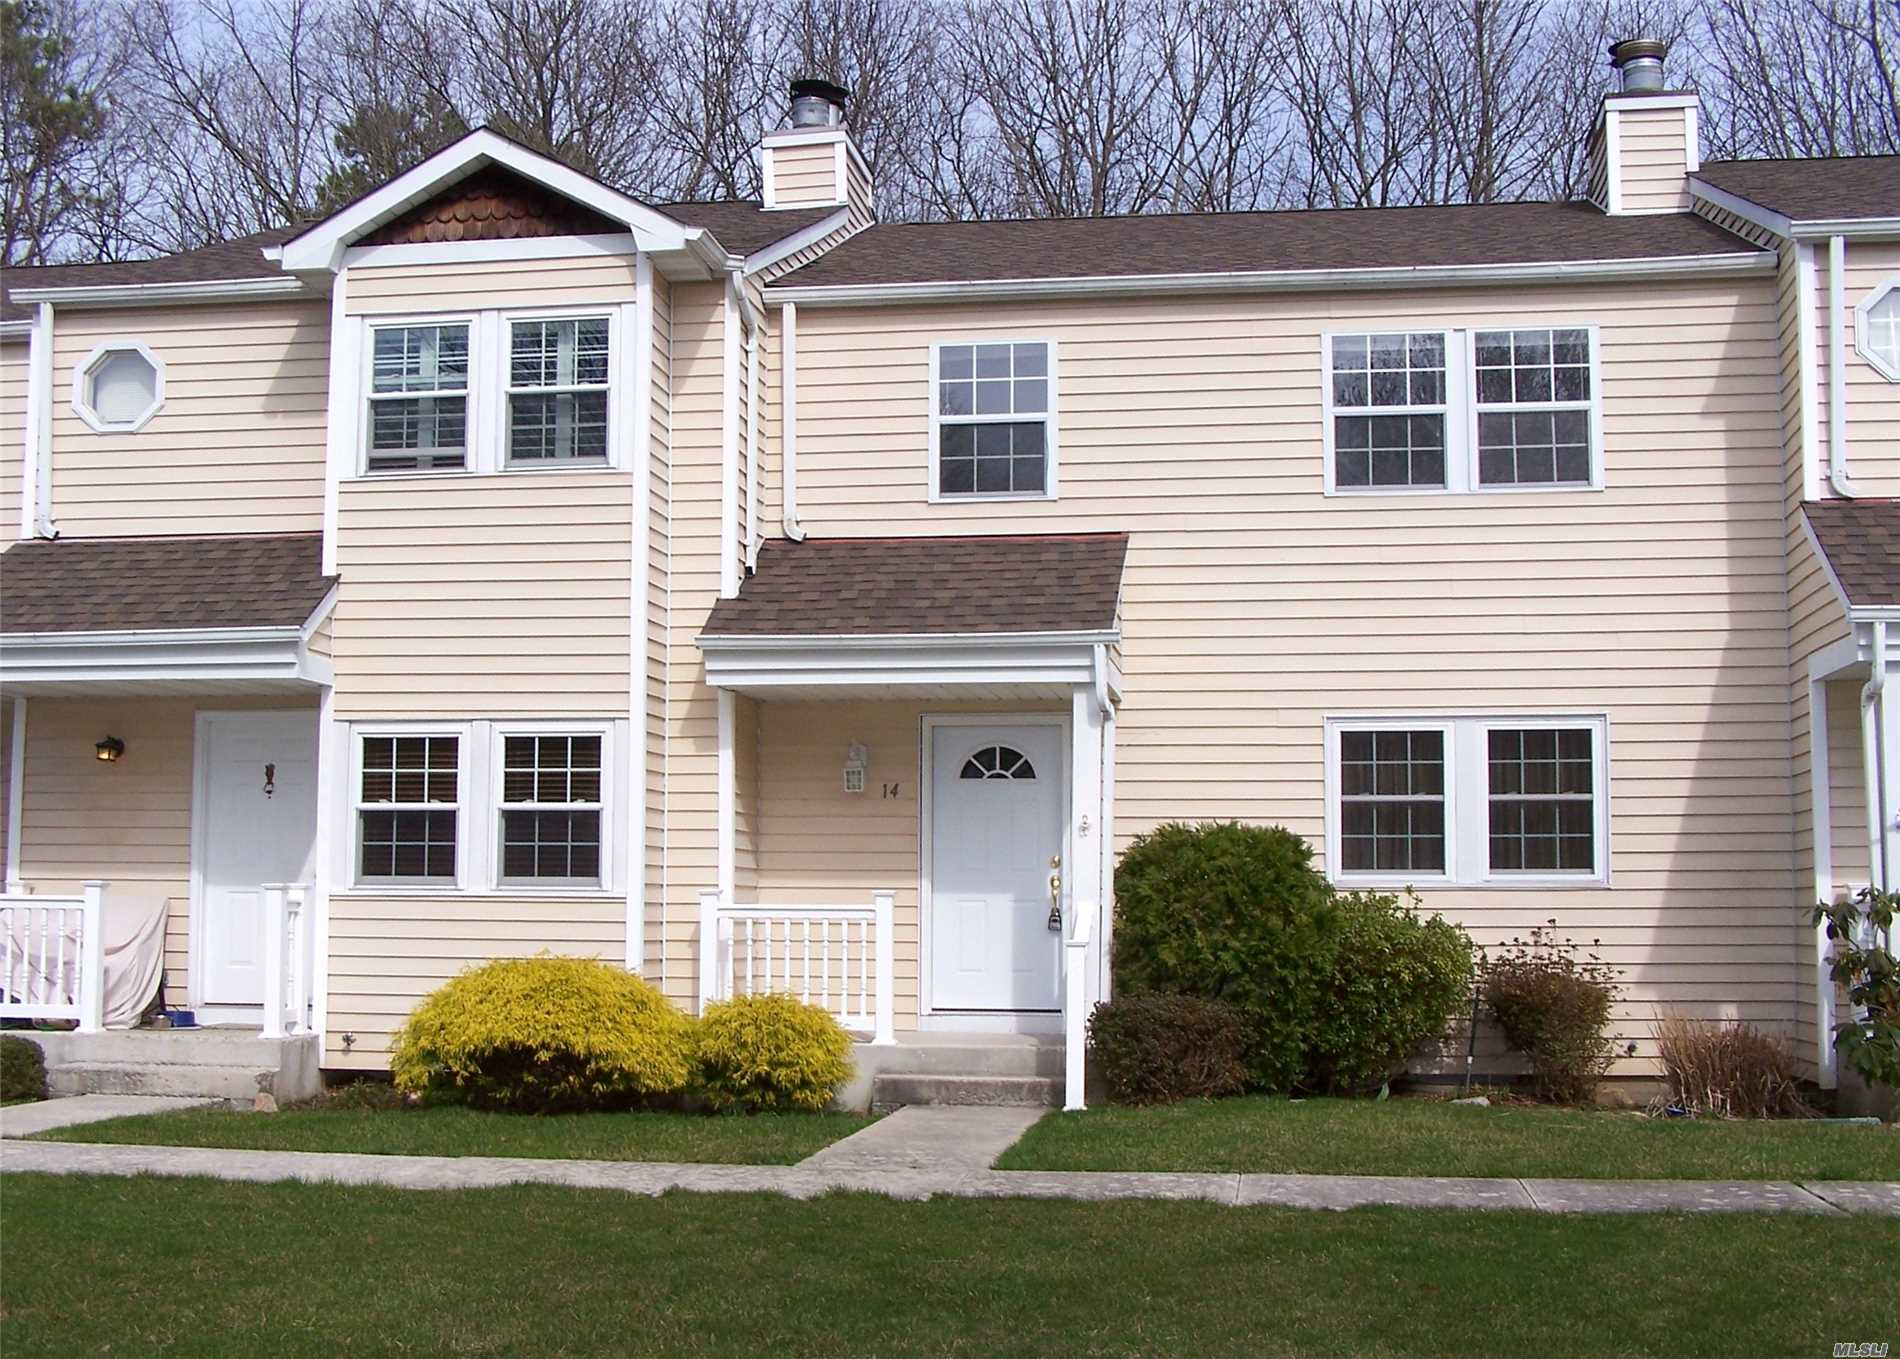 Updated Condo Unit in Whispering Pines with 3 BR, 1 Full Bath, .5 Bath. Don't miss the opportunity to own a home in your own paradise to enjoy the amenities and relax